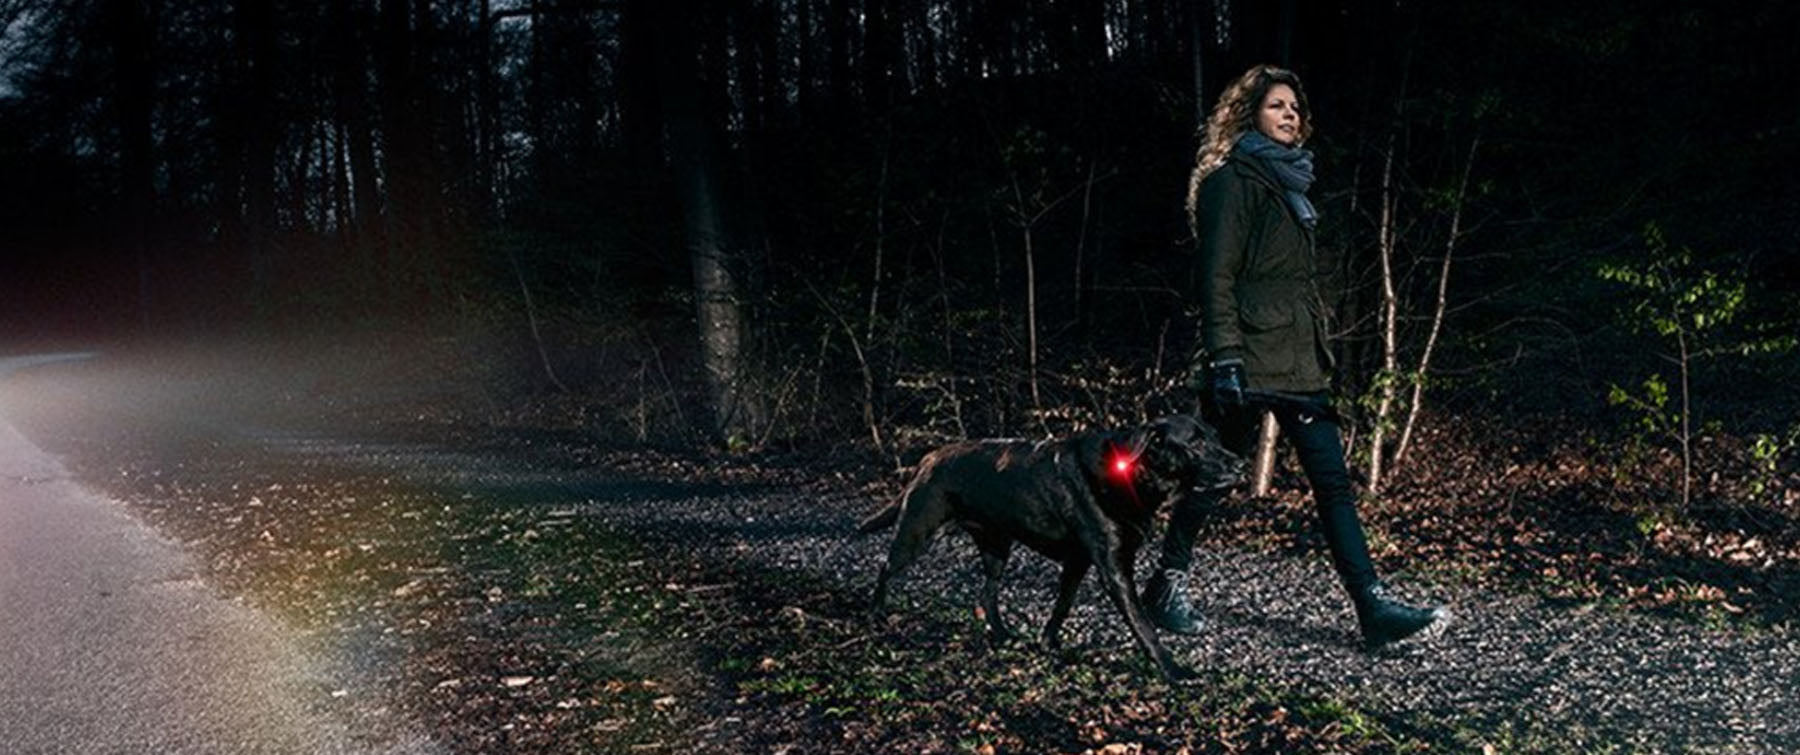 Why you should be lit up at night walking